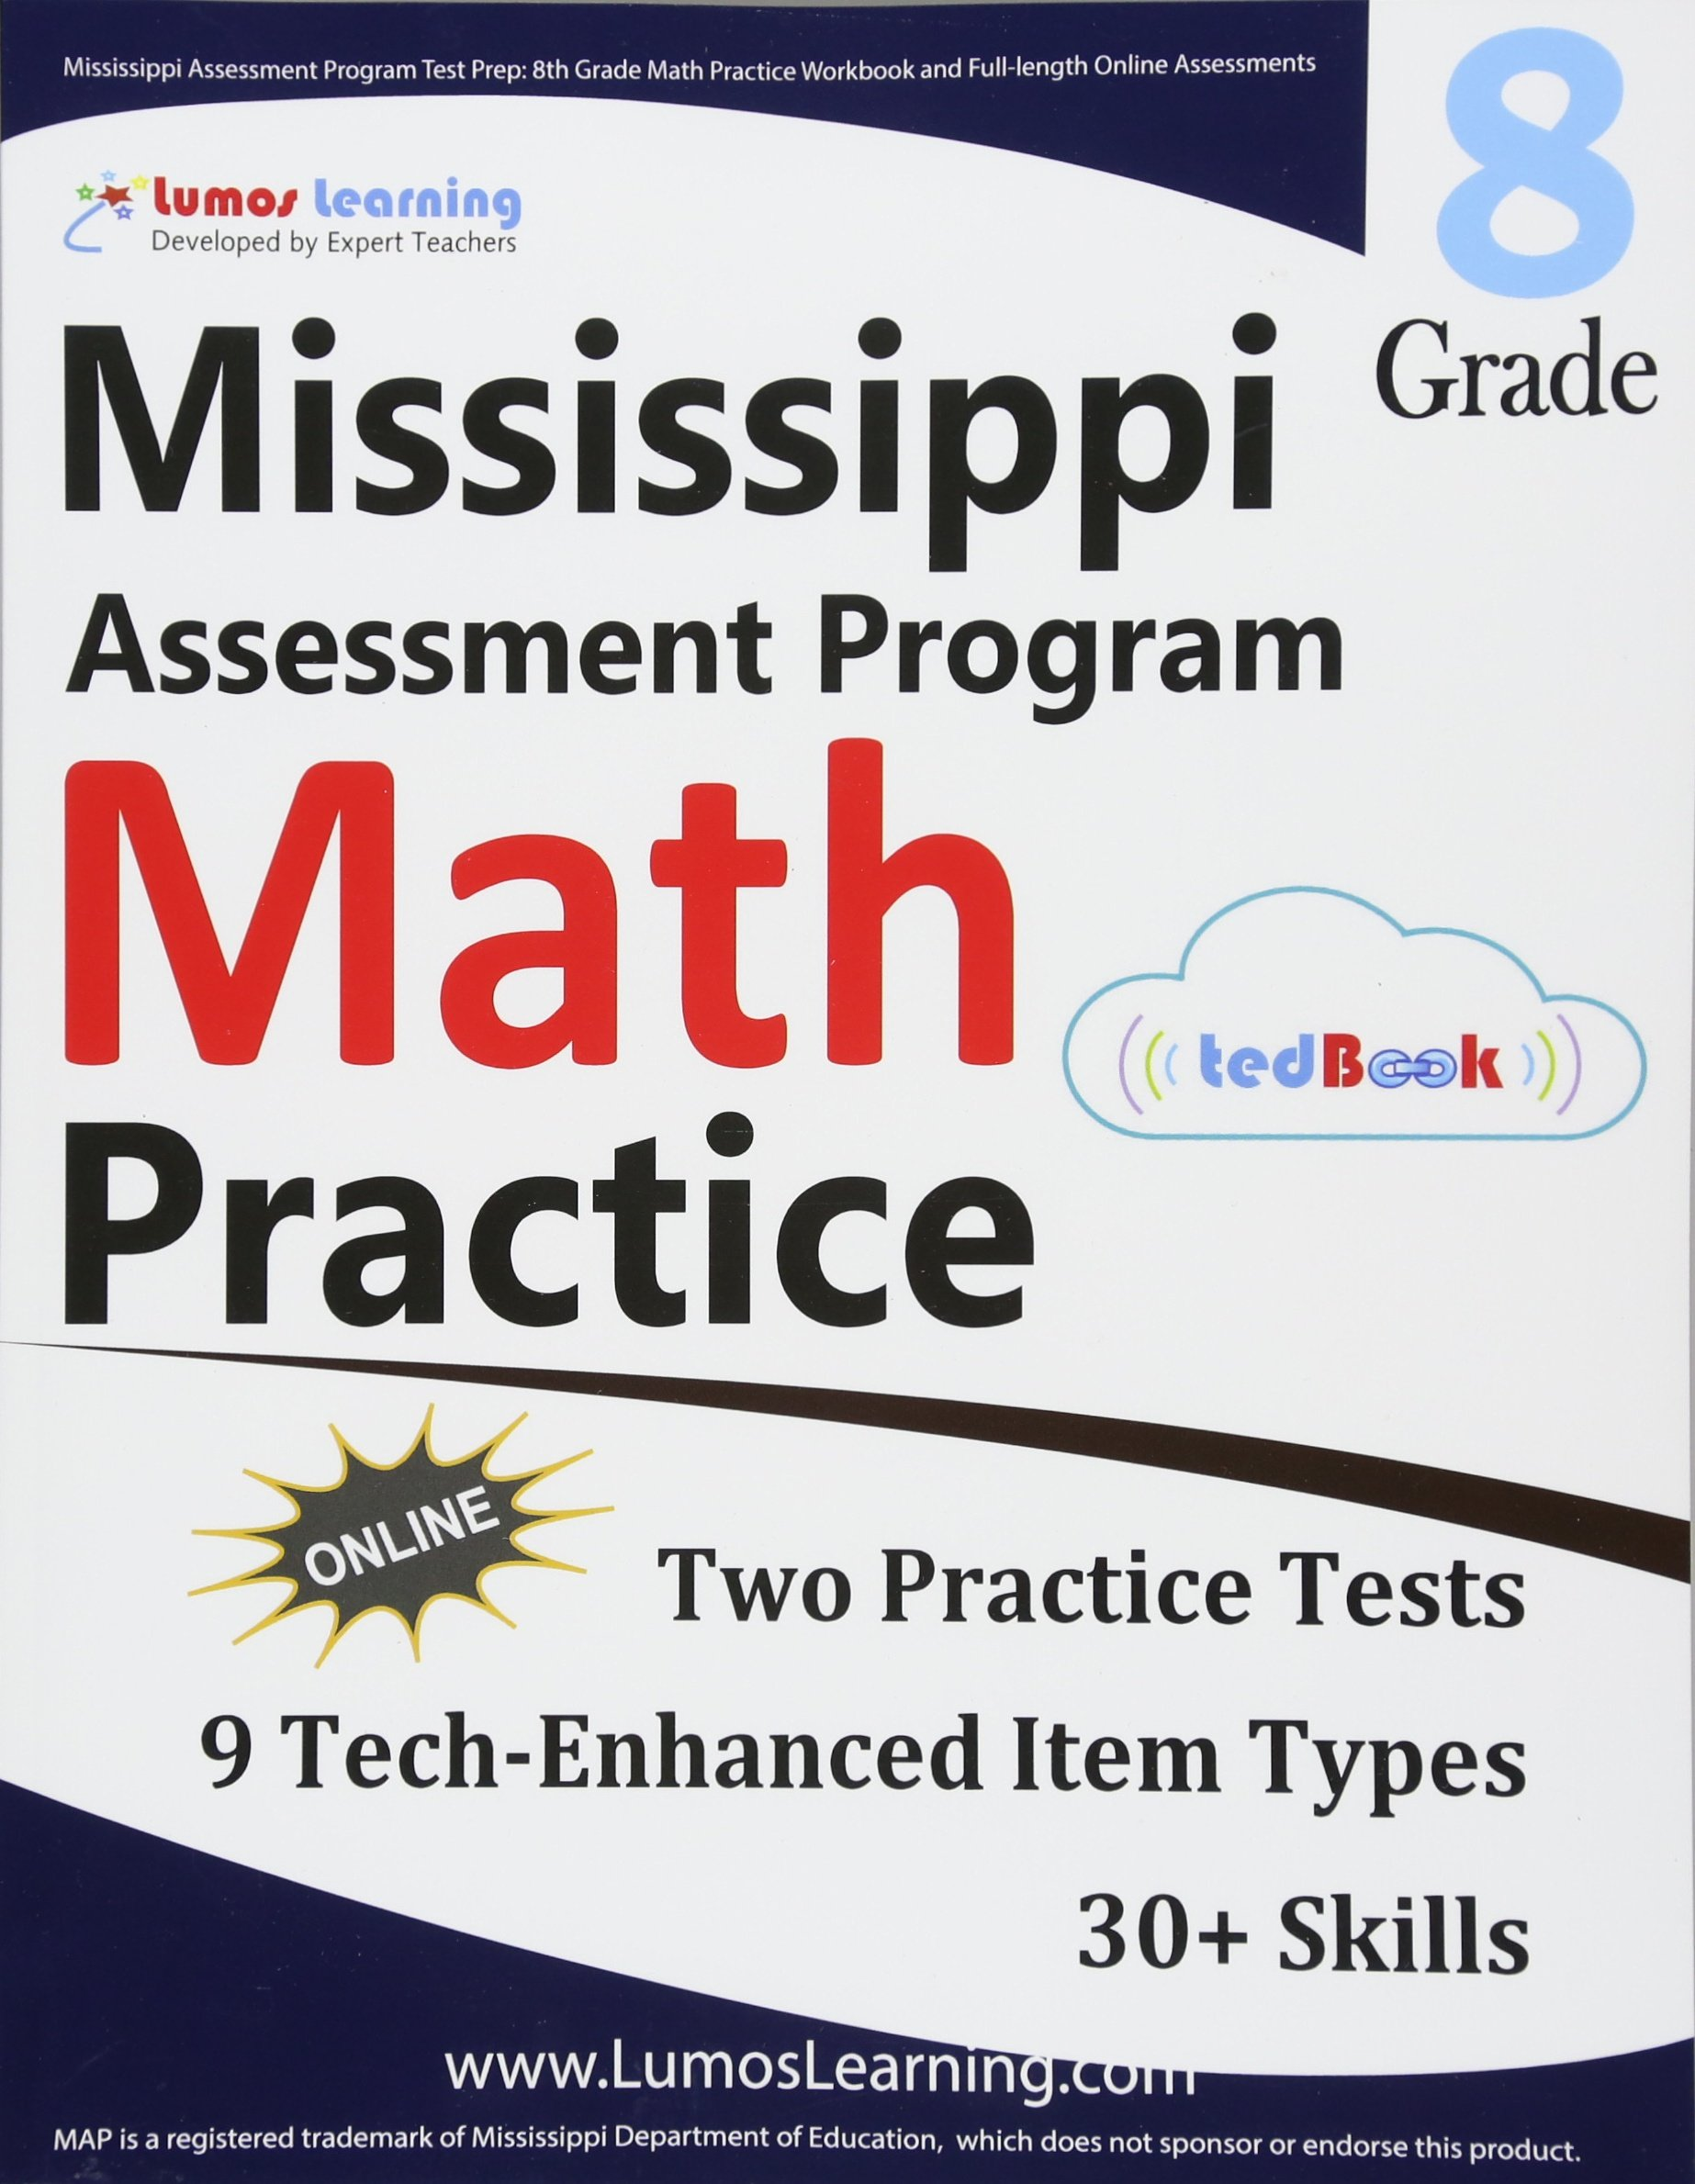 Mississippi Assessment Program Test Prep 8th Grade Math Practice